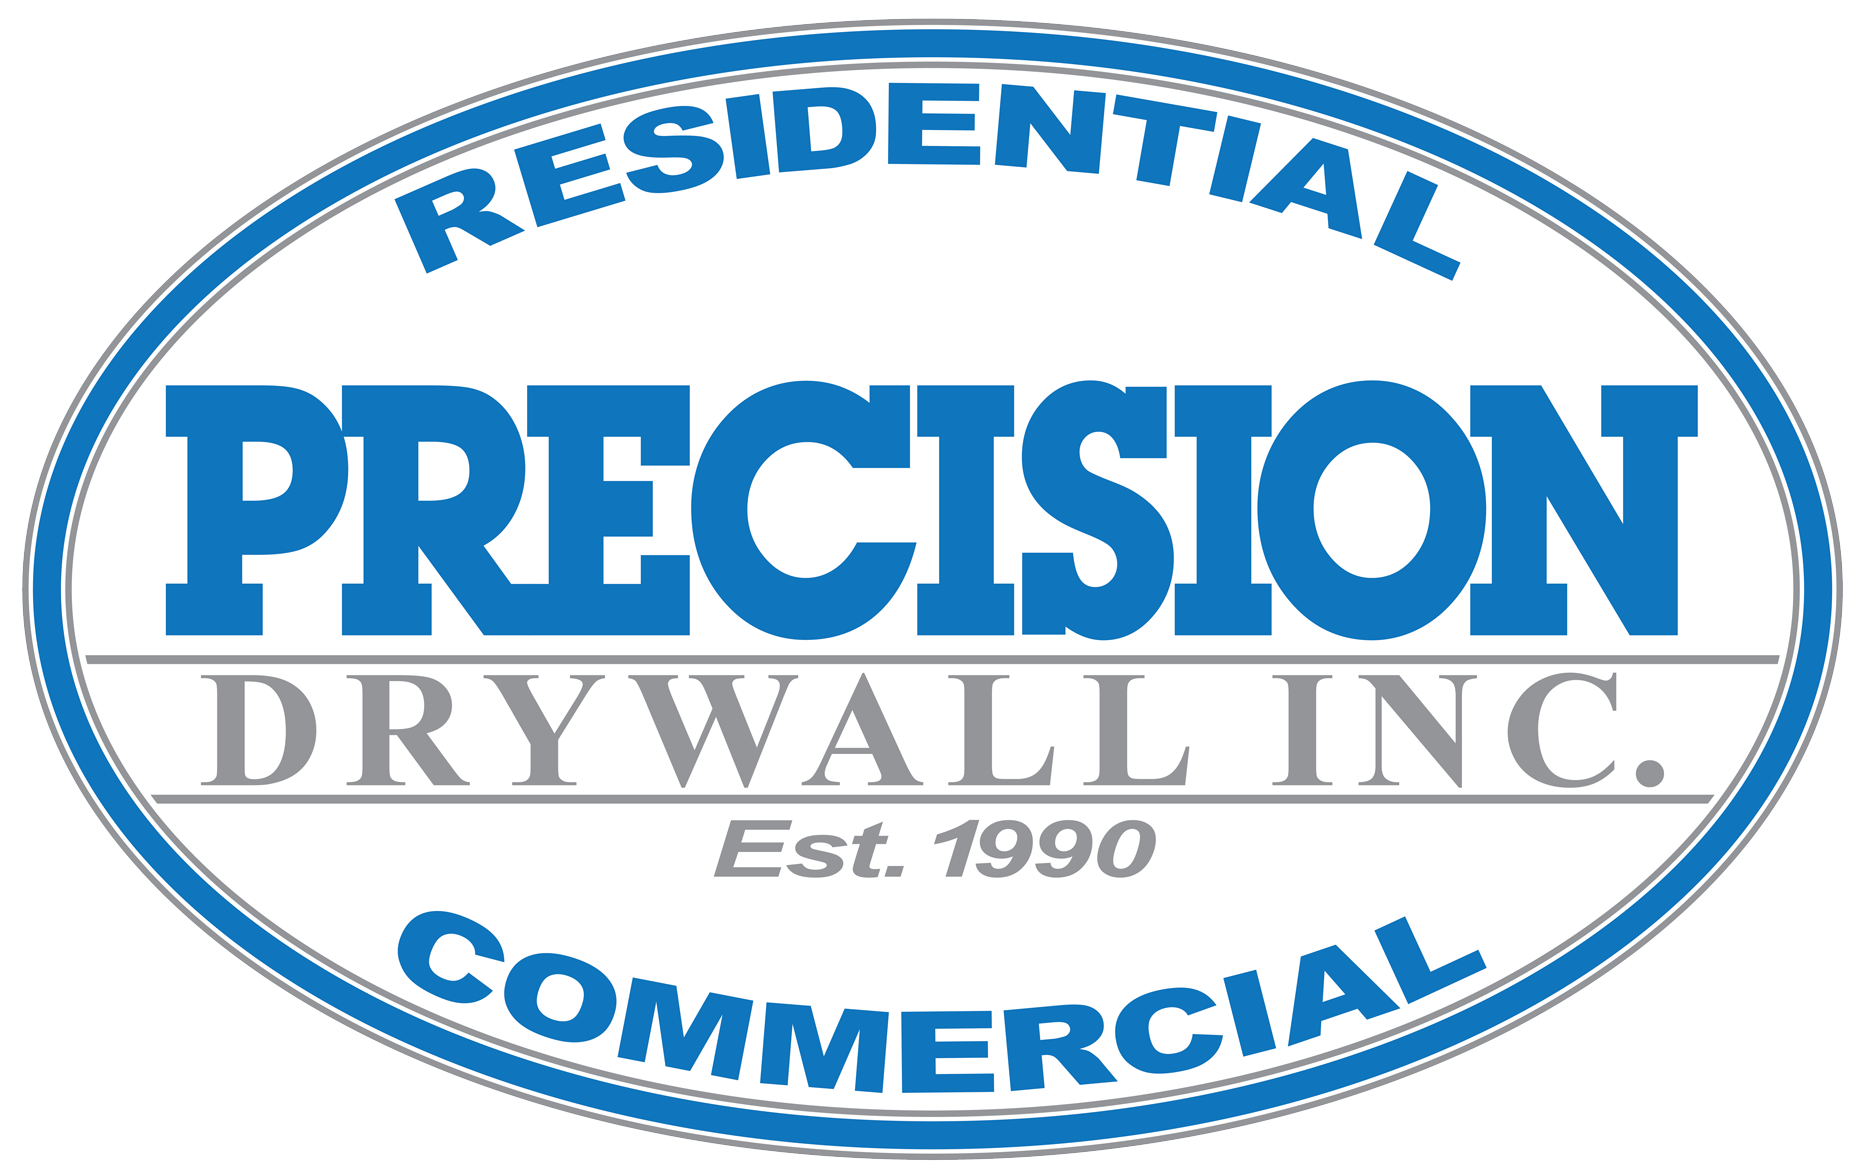 Precision Drywall